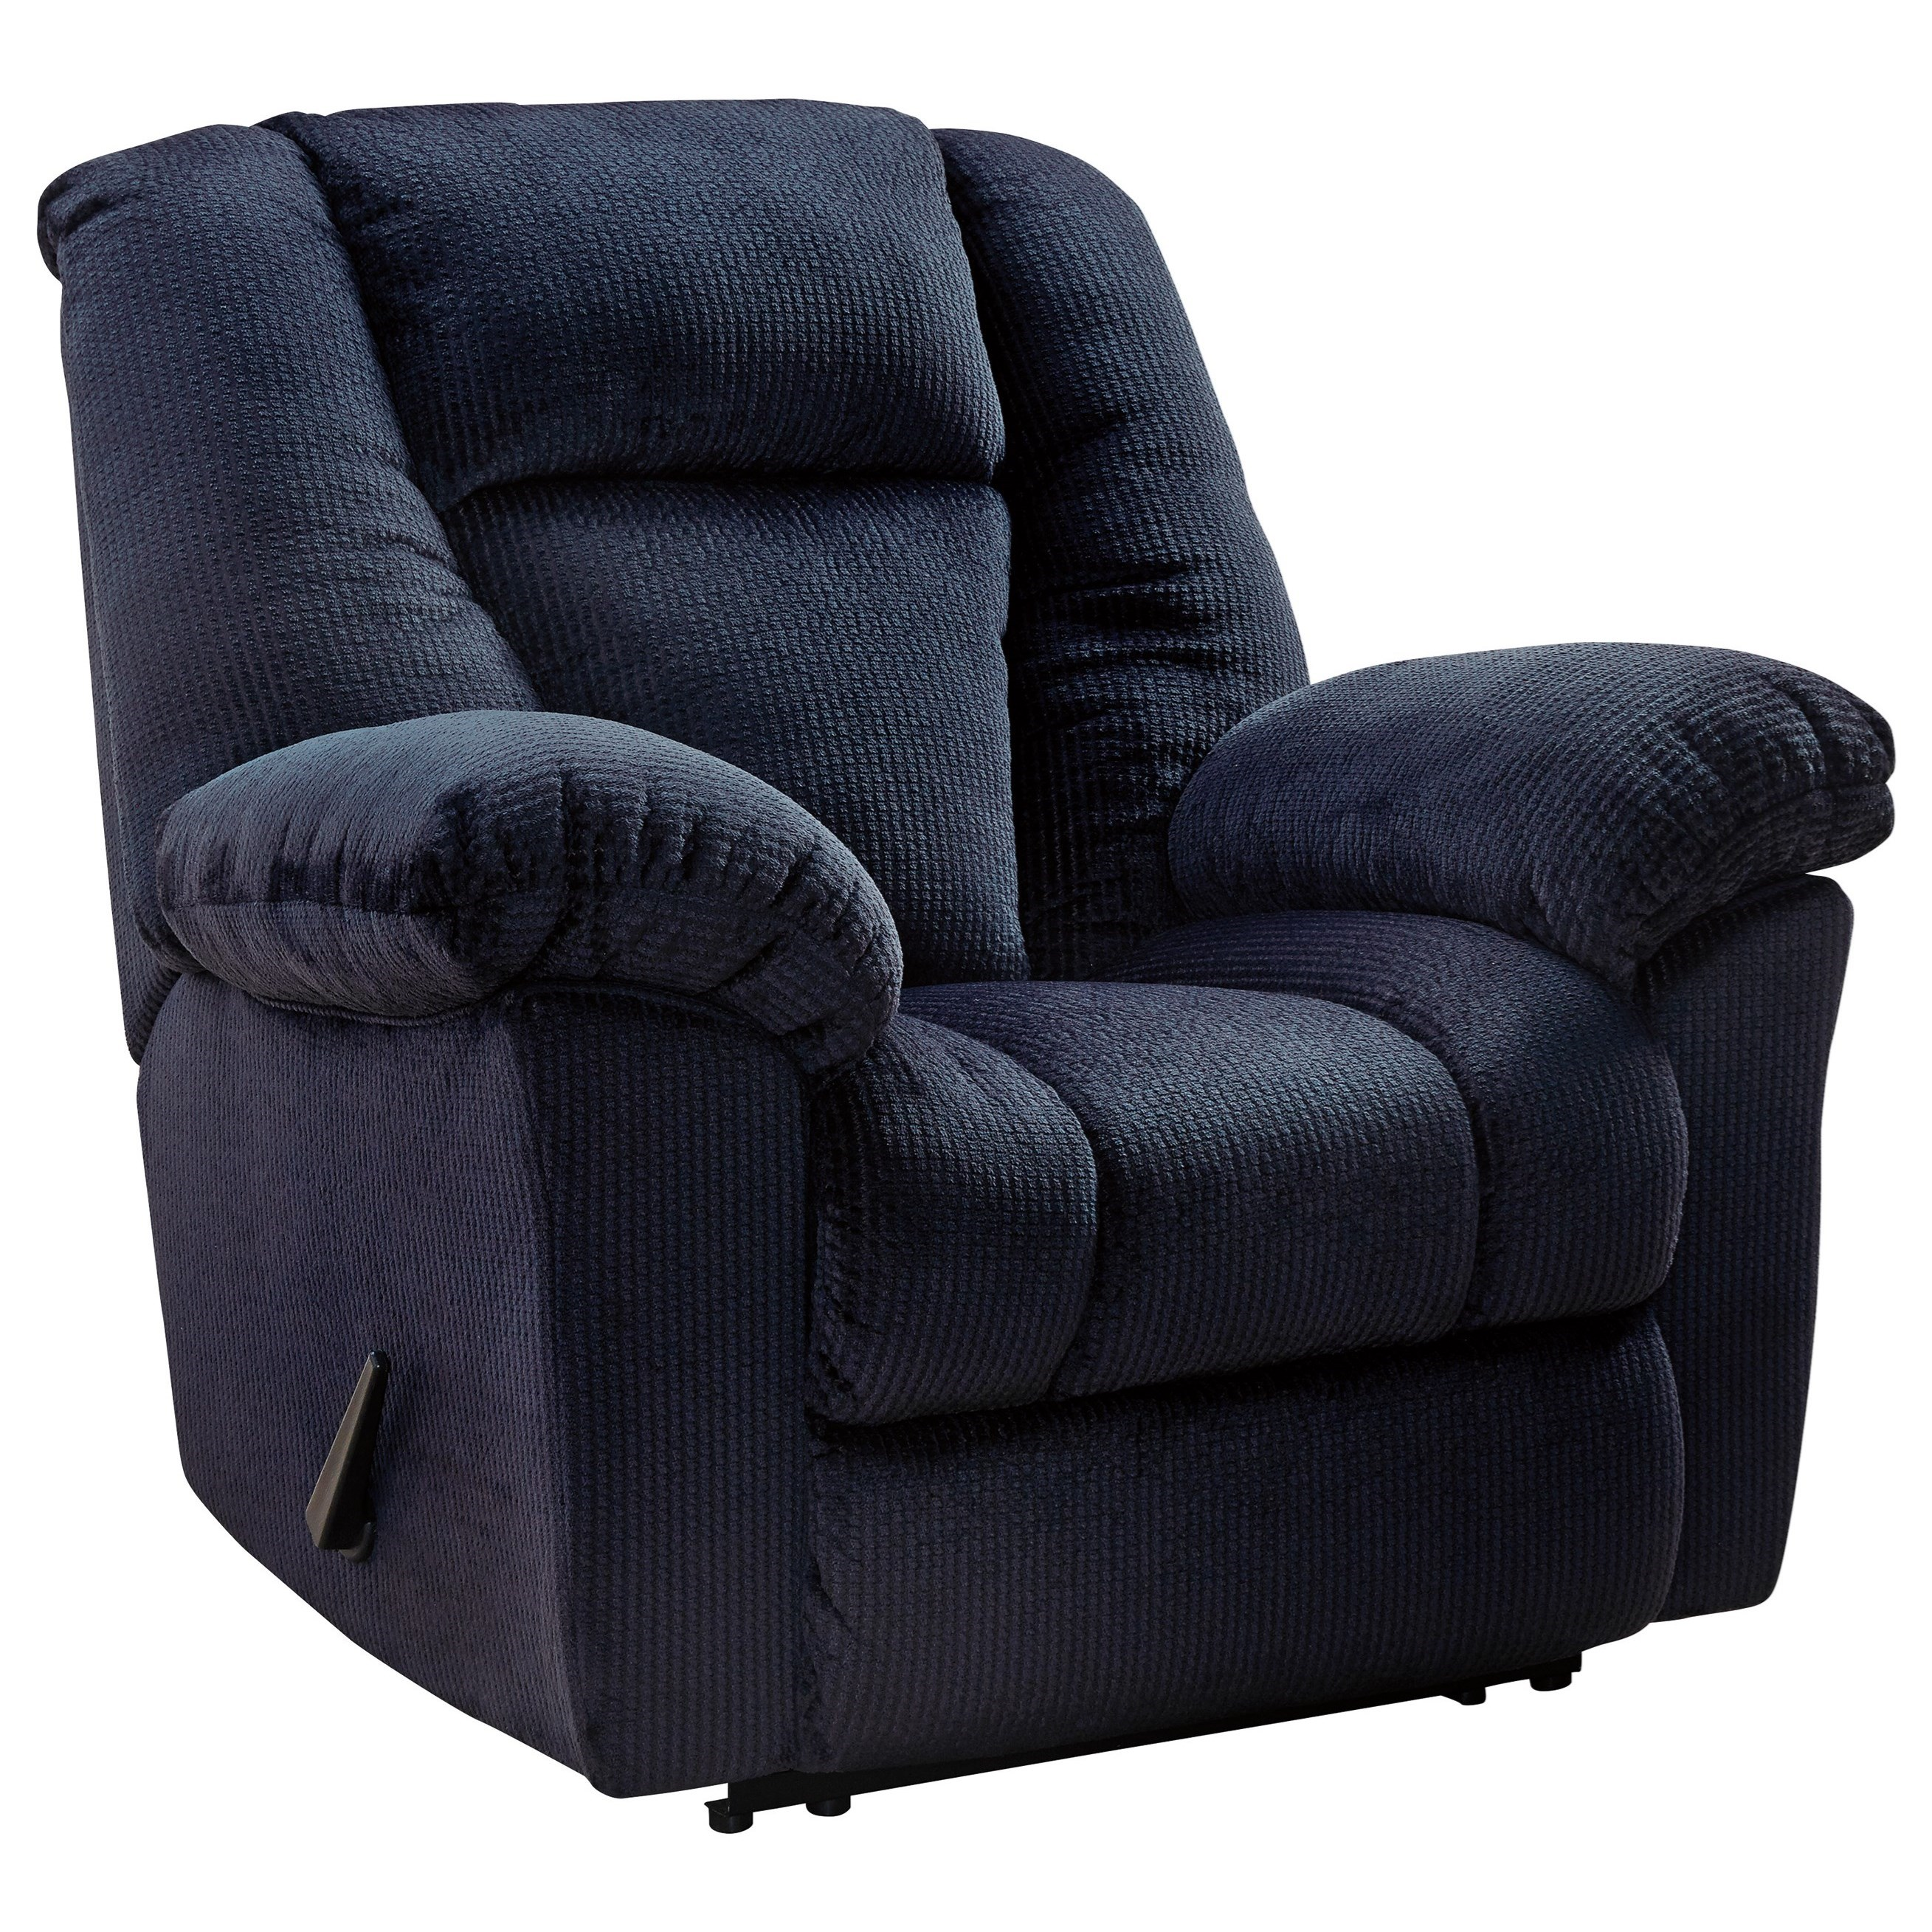 Signature Design by Ashley Nimmons Zero Wall Recliner - Item Number: 3630329